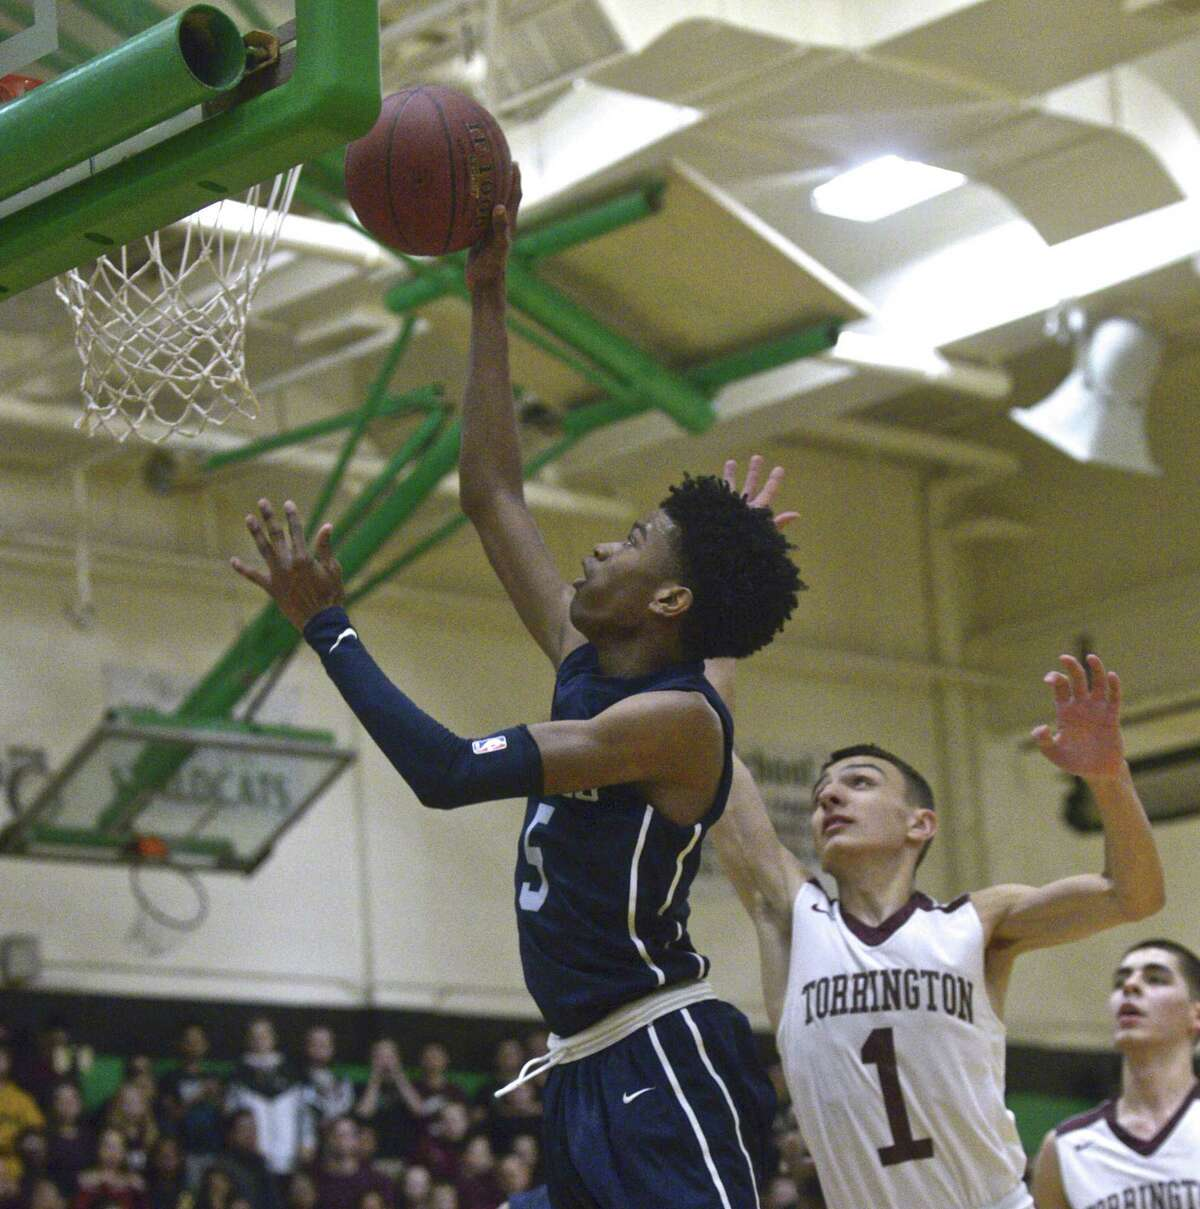 Amistad's Jaden Ratiff (5) goes past Torrington's Nick Balducci (1) to the basket in the CIAC Division III boys basketball semifinal game between Amistad and Torrington high schools, Wednesday, March 13, 2019, at Wilby High School, Waterbury, Conn.